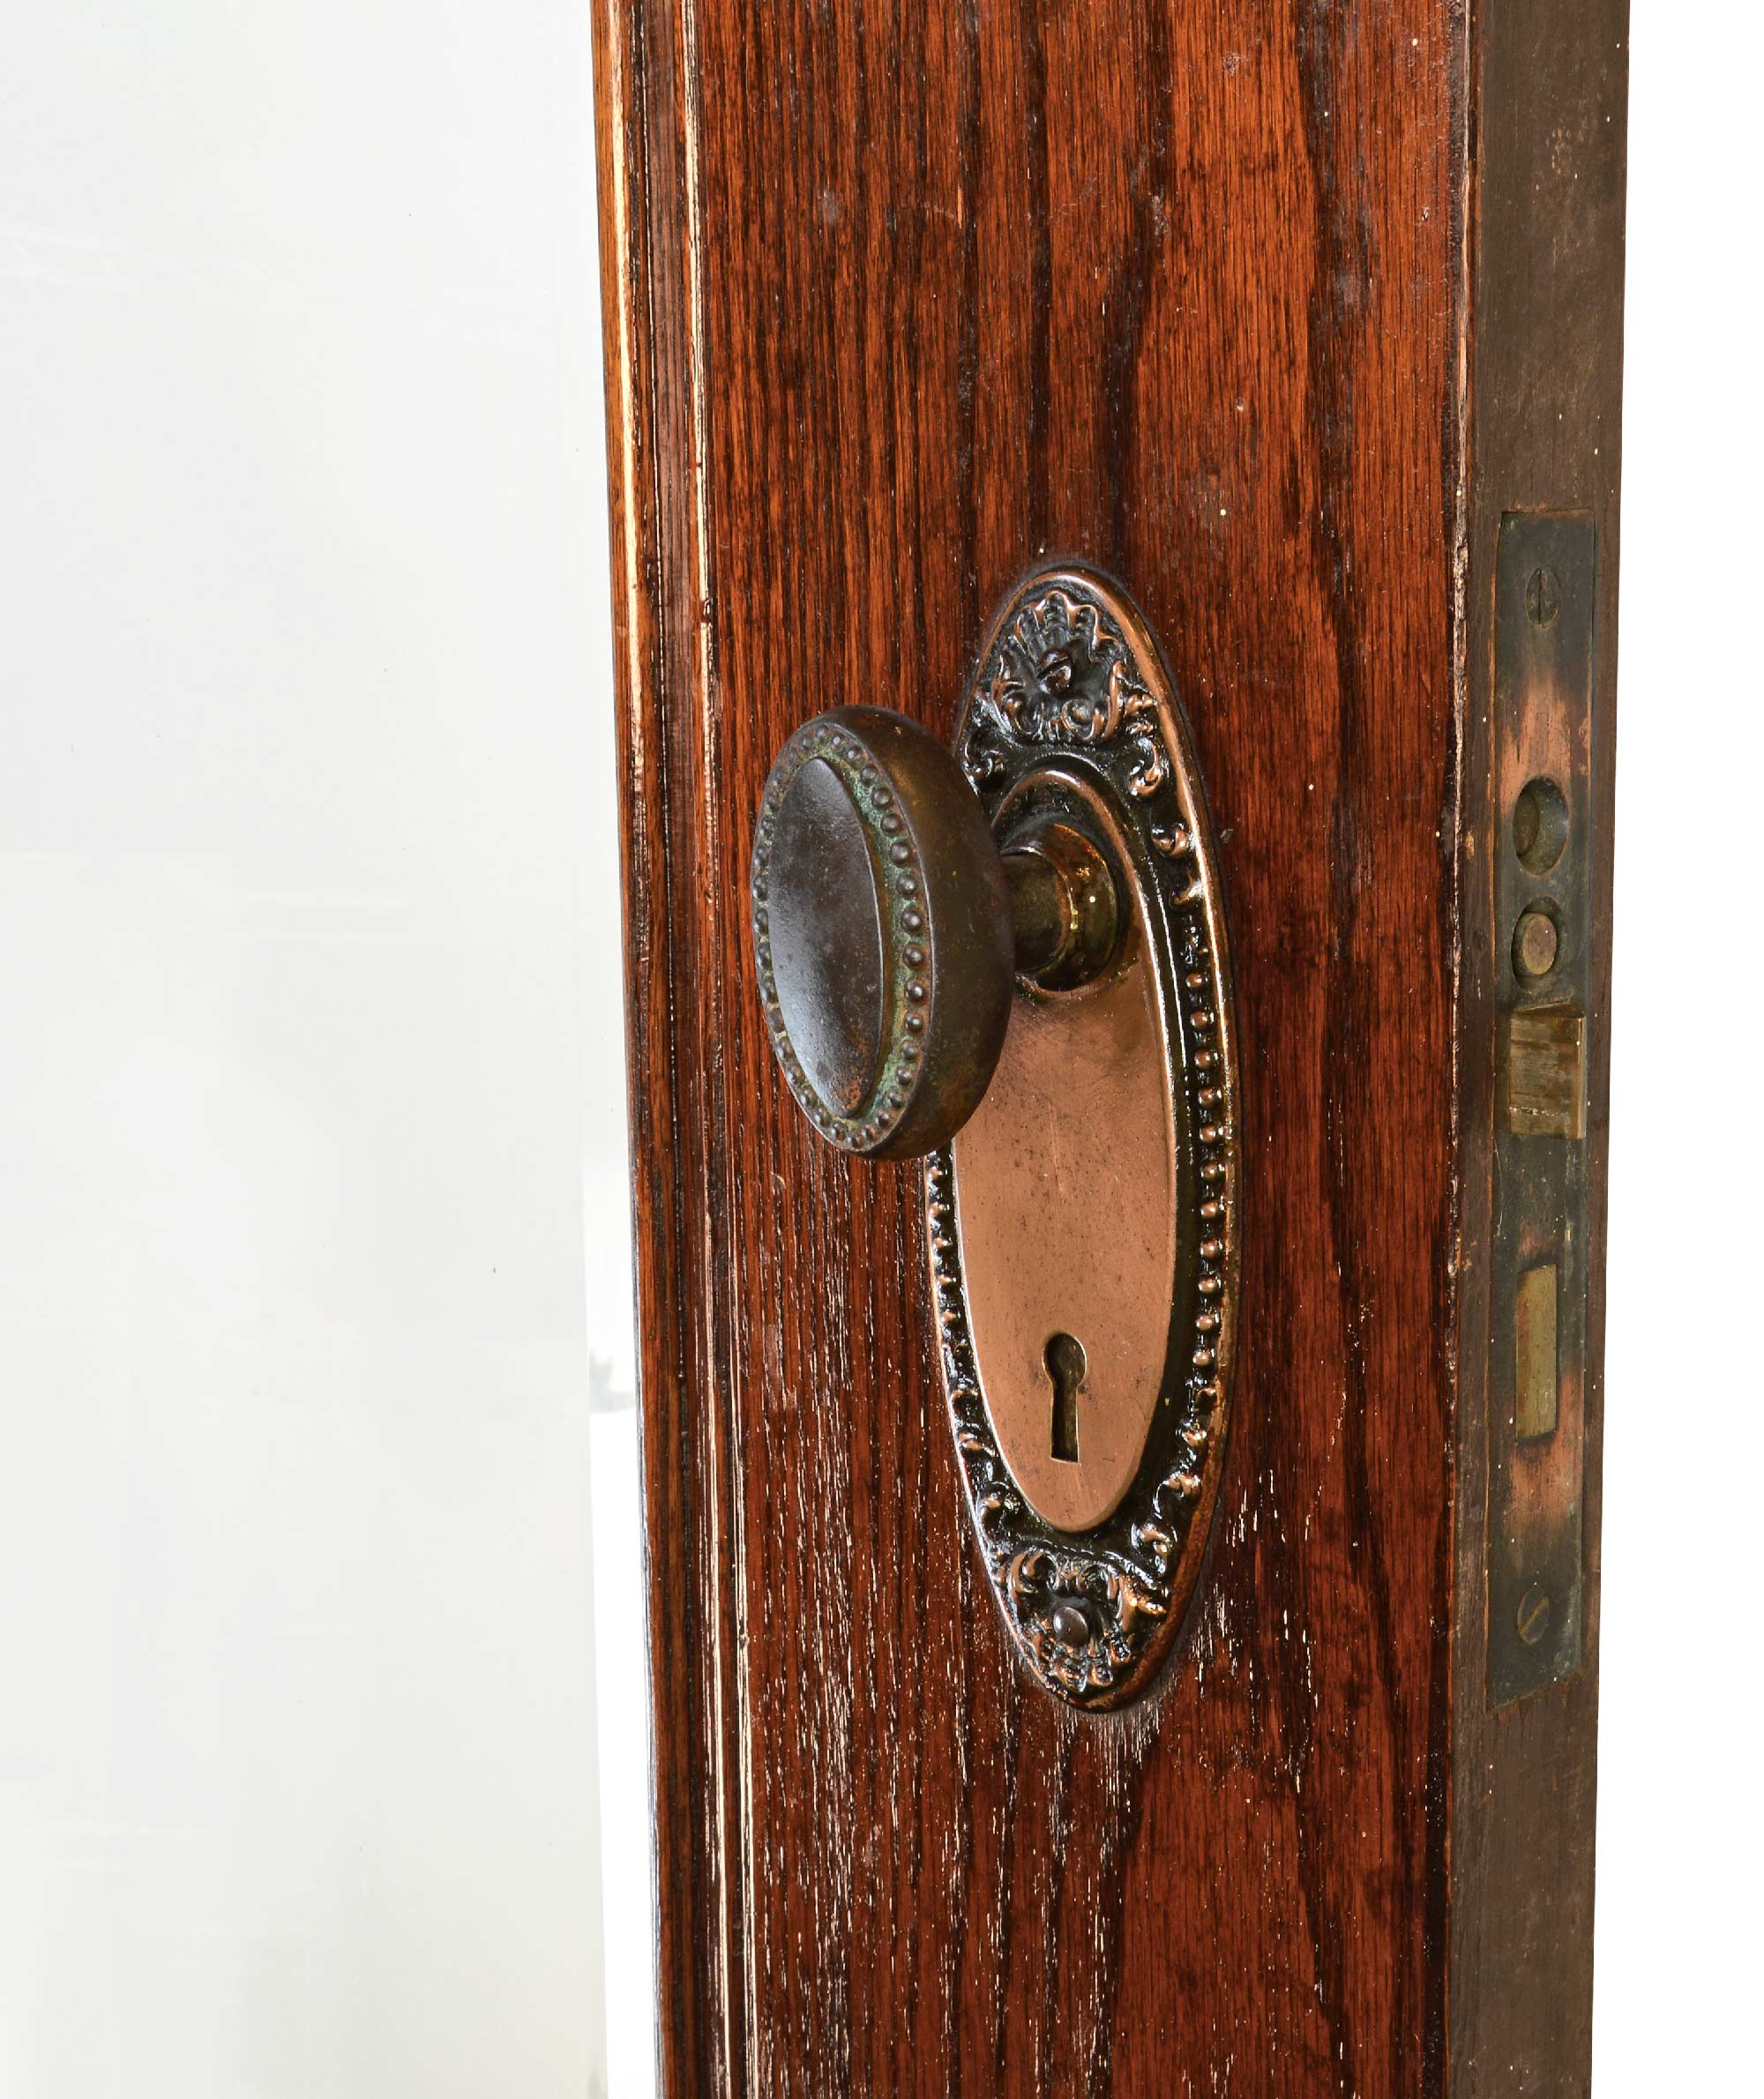 46824-full-view-door-with-beveled-glass-and-hardware-knob.jpg